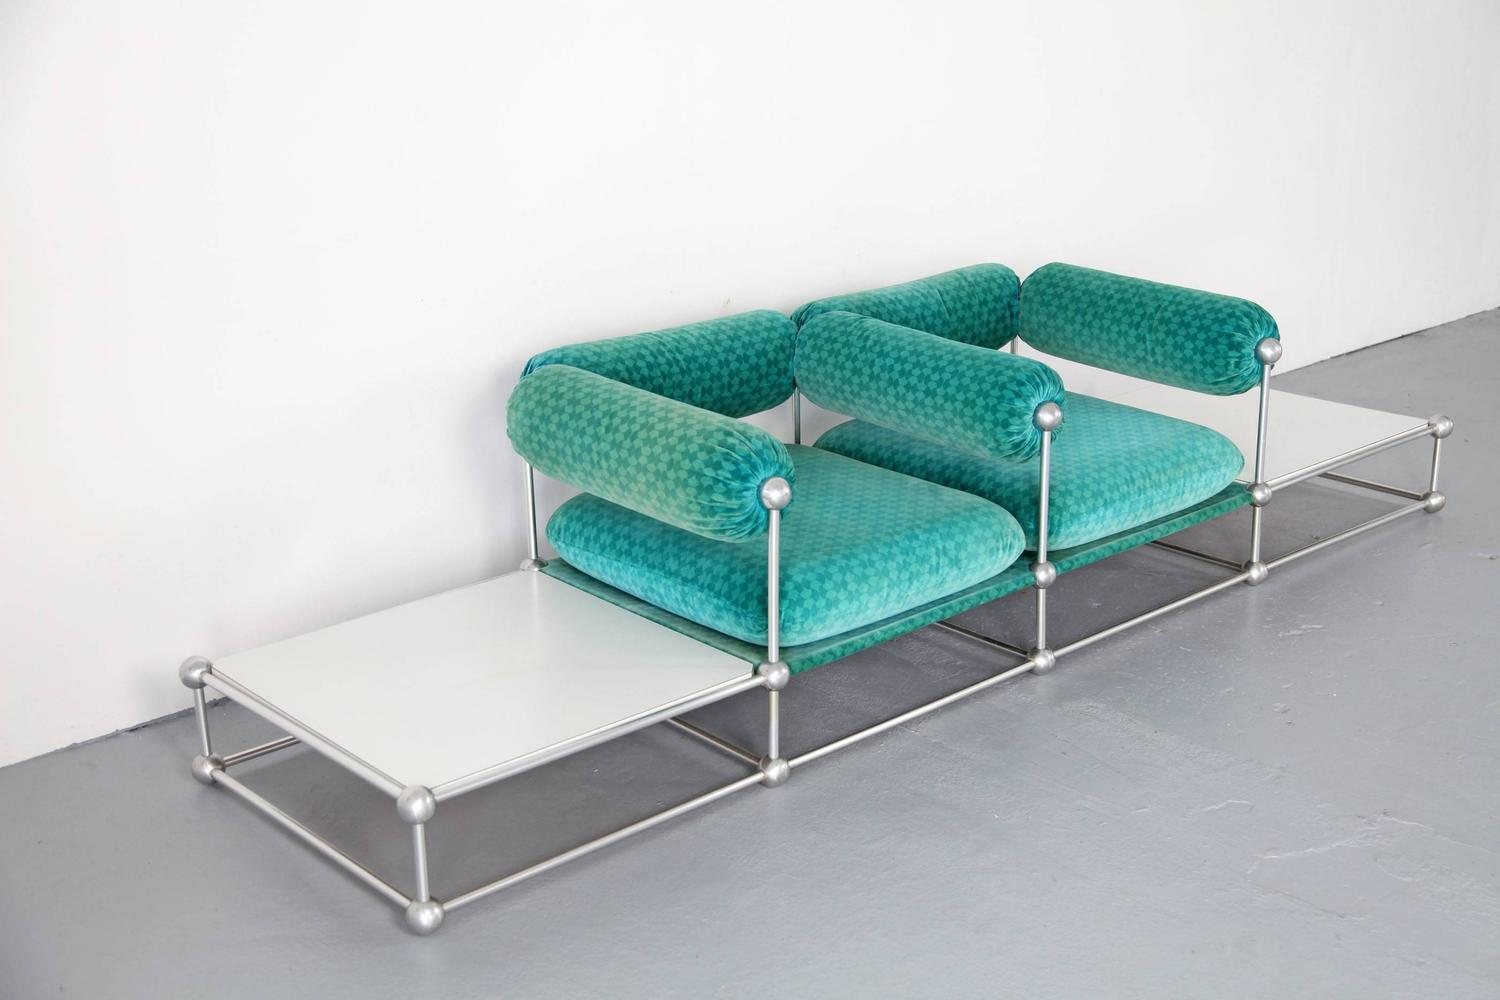 Two Seat Sofa With Tables S420 Modular Seating By Verner